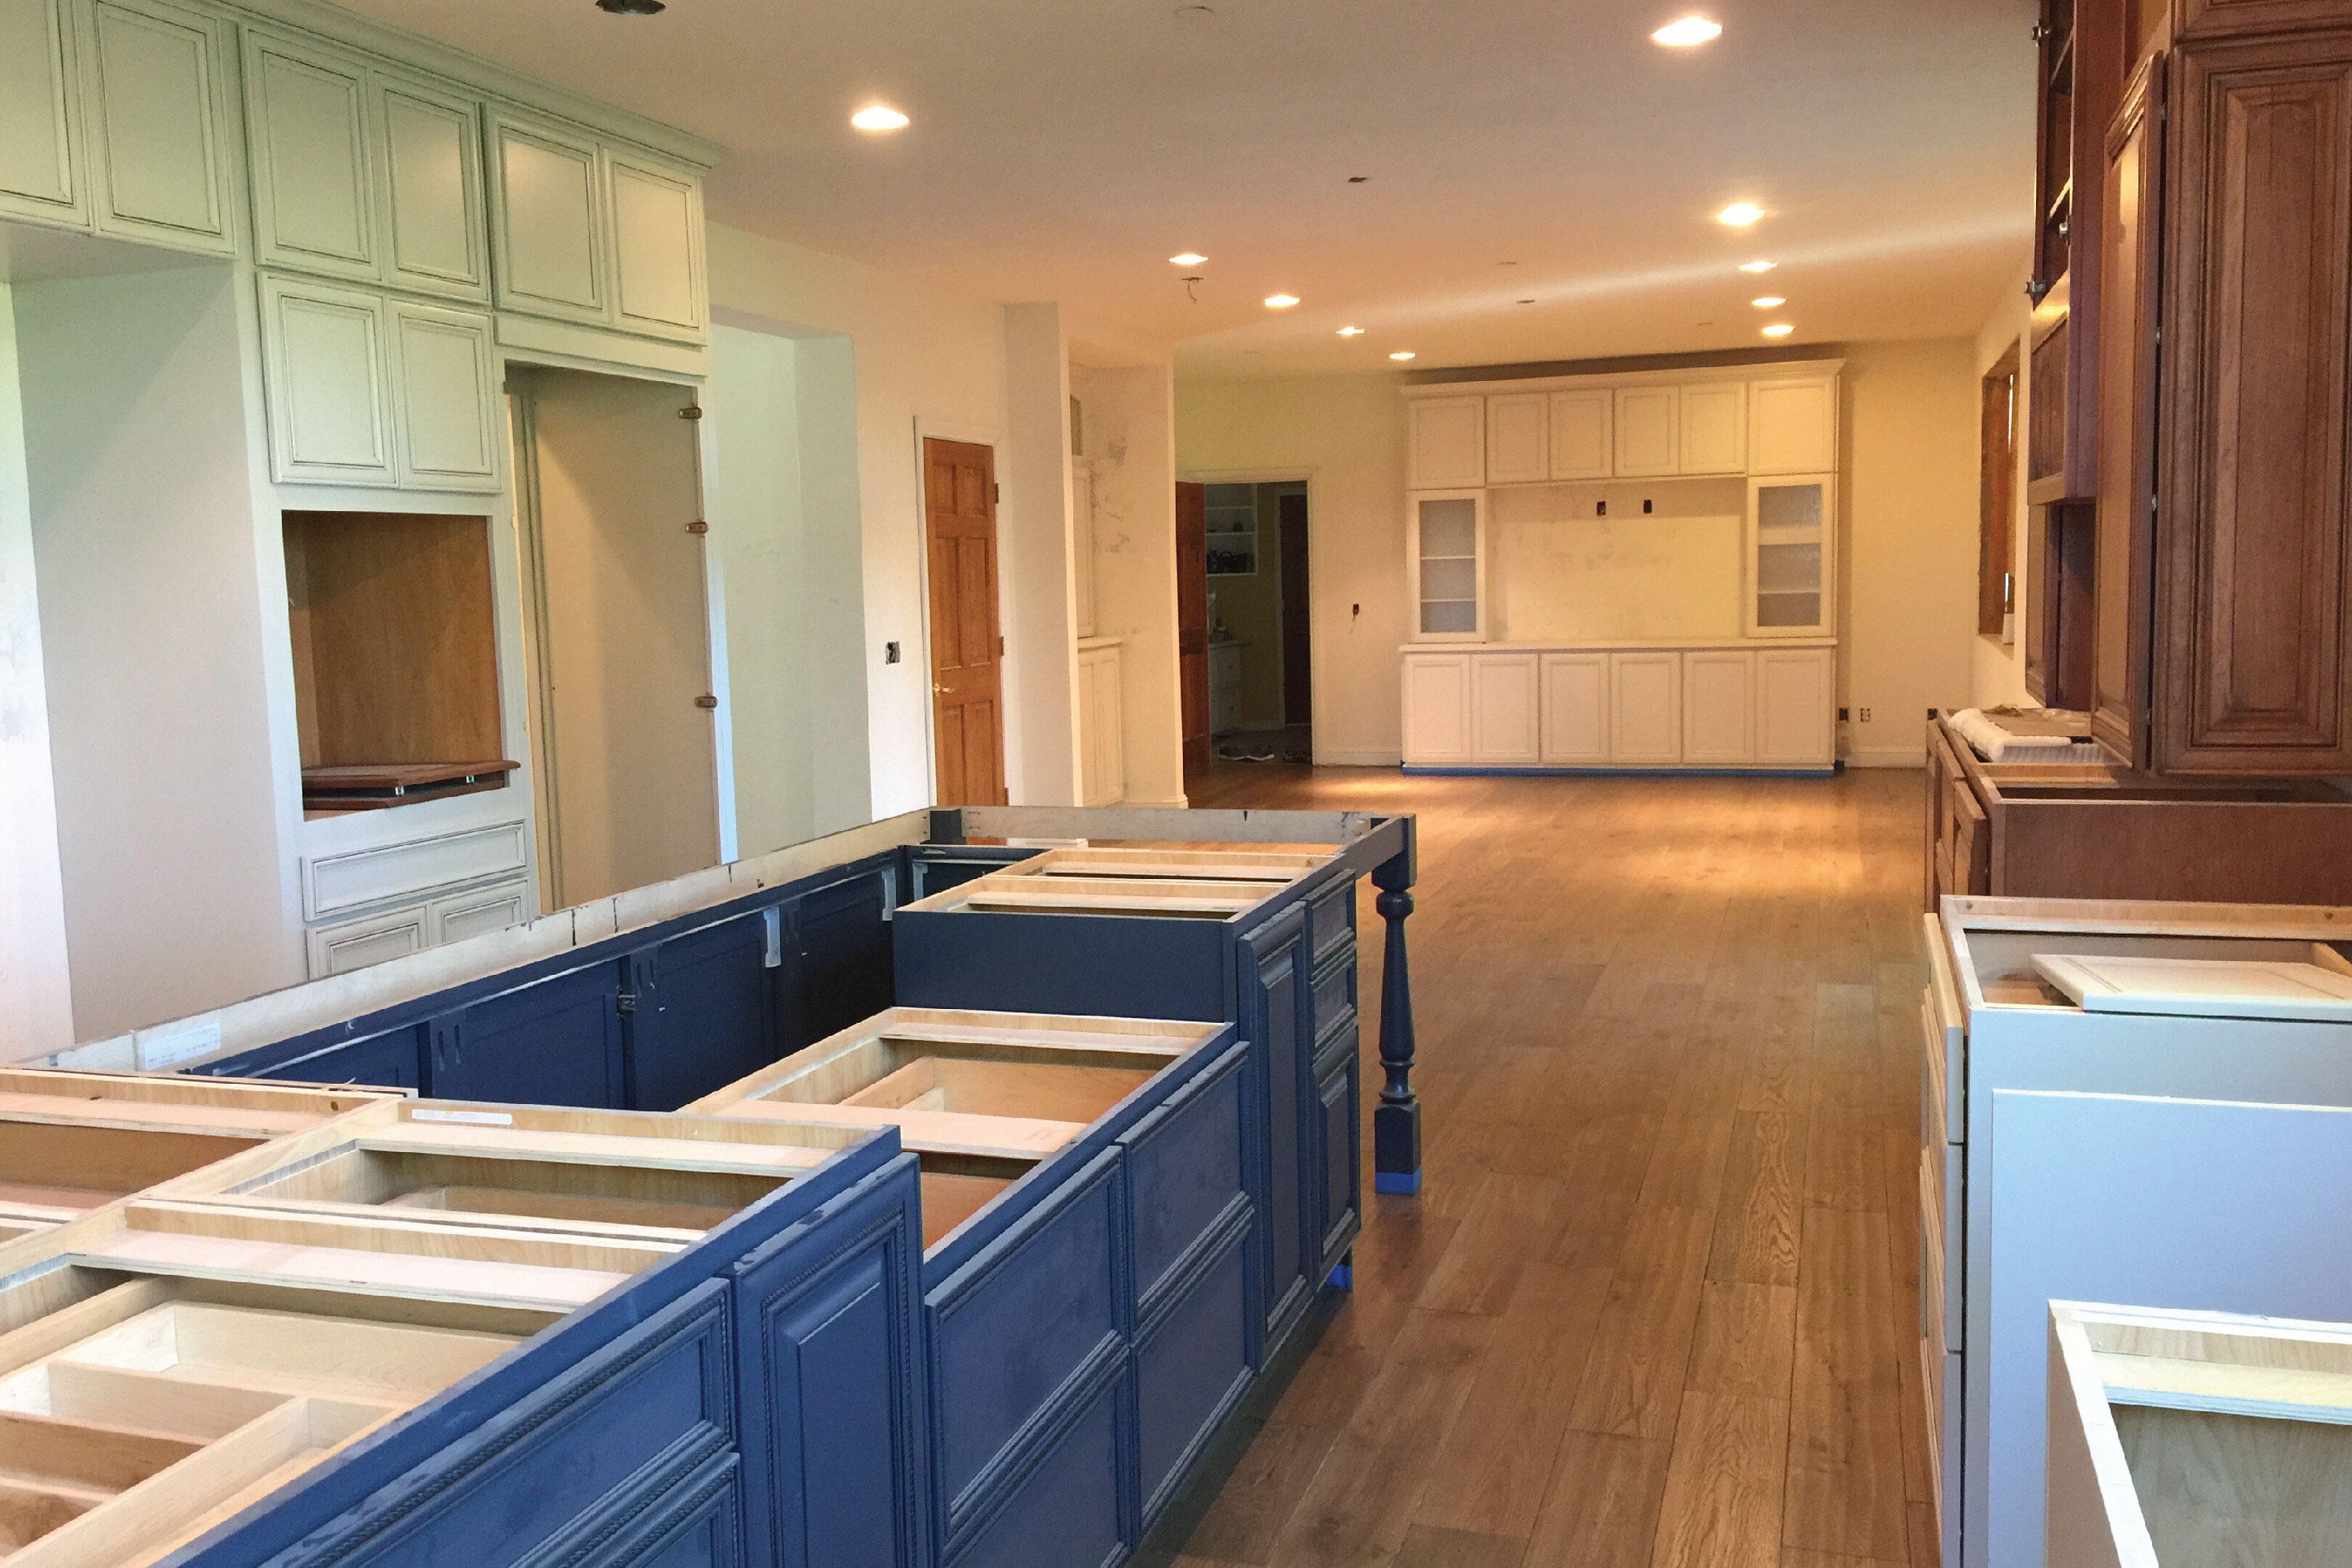 a kitchen in the middle of a remodel